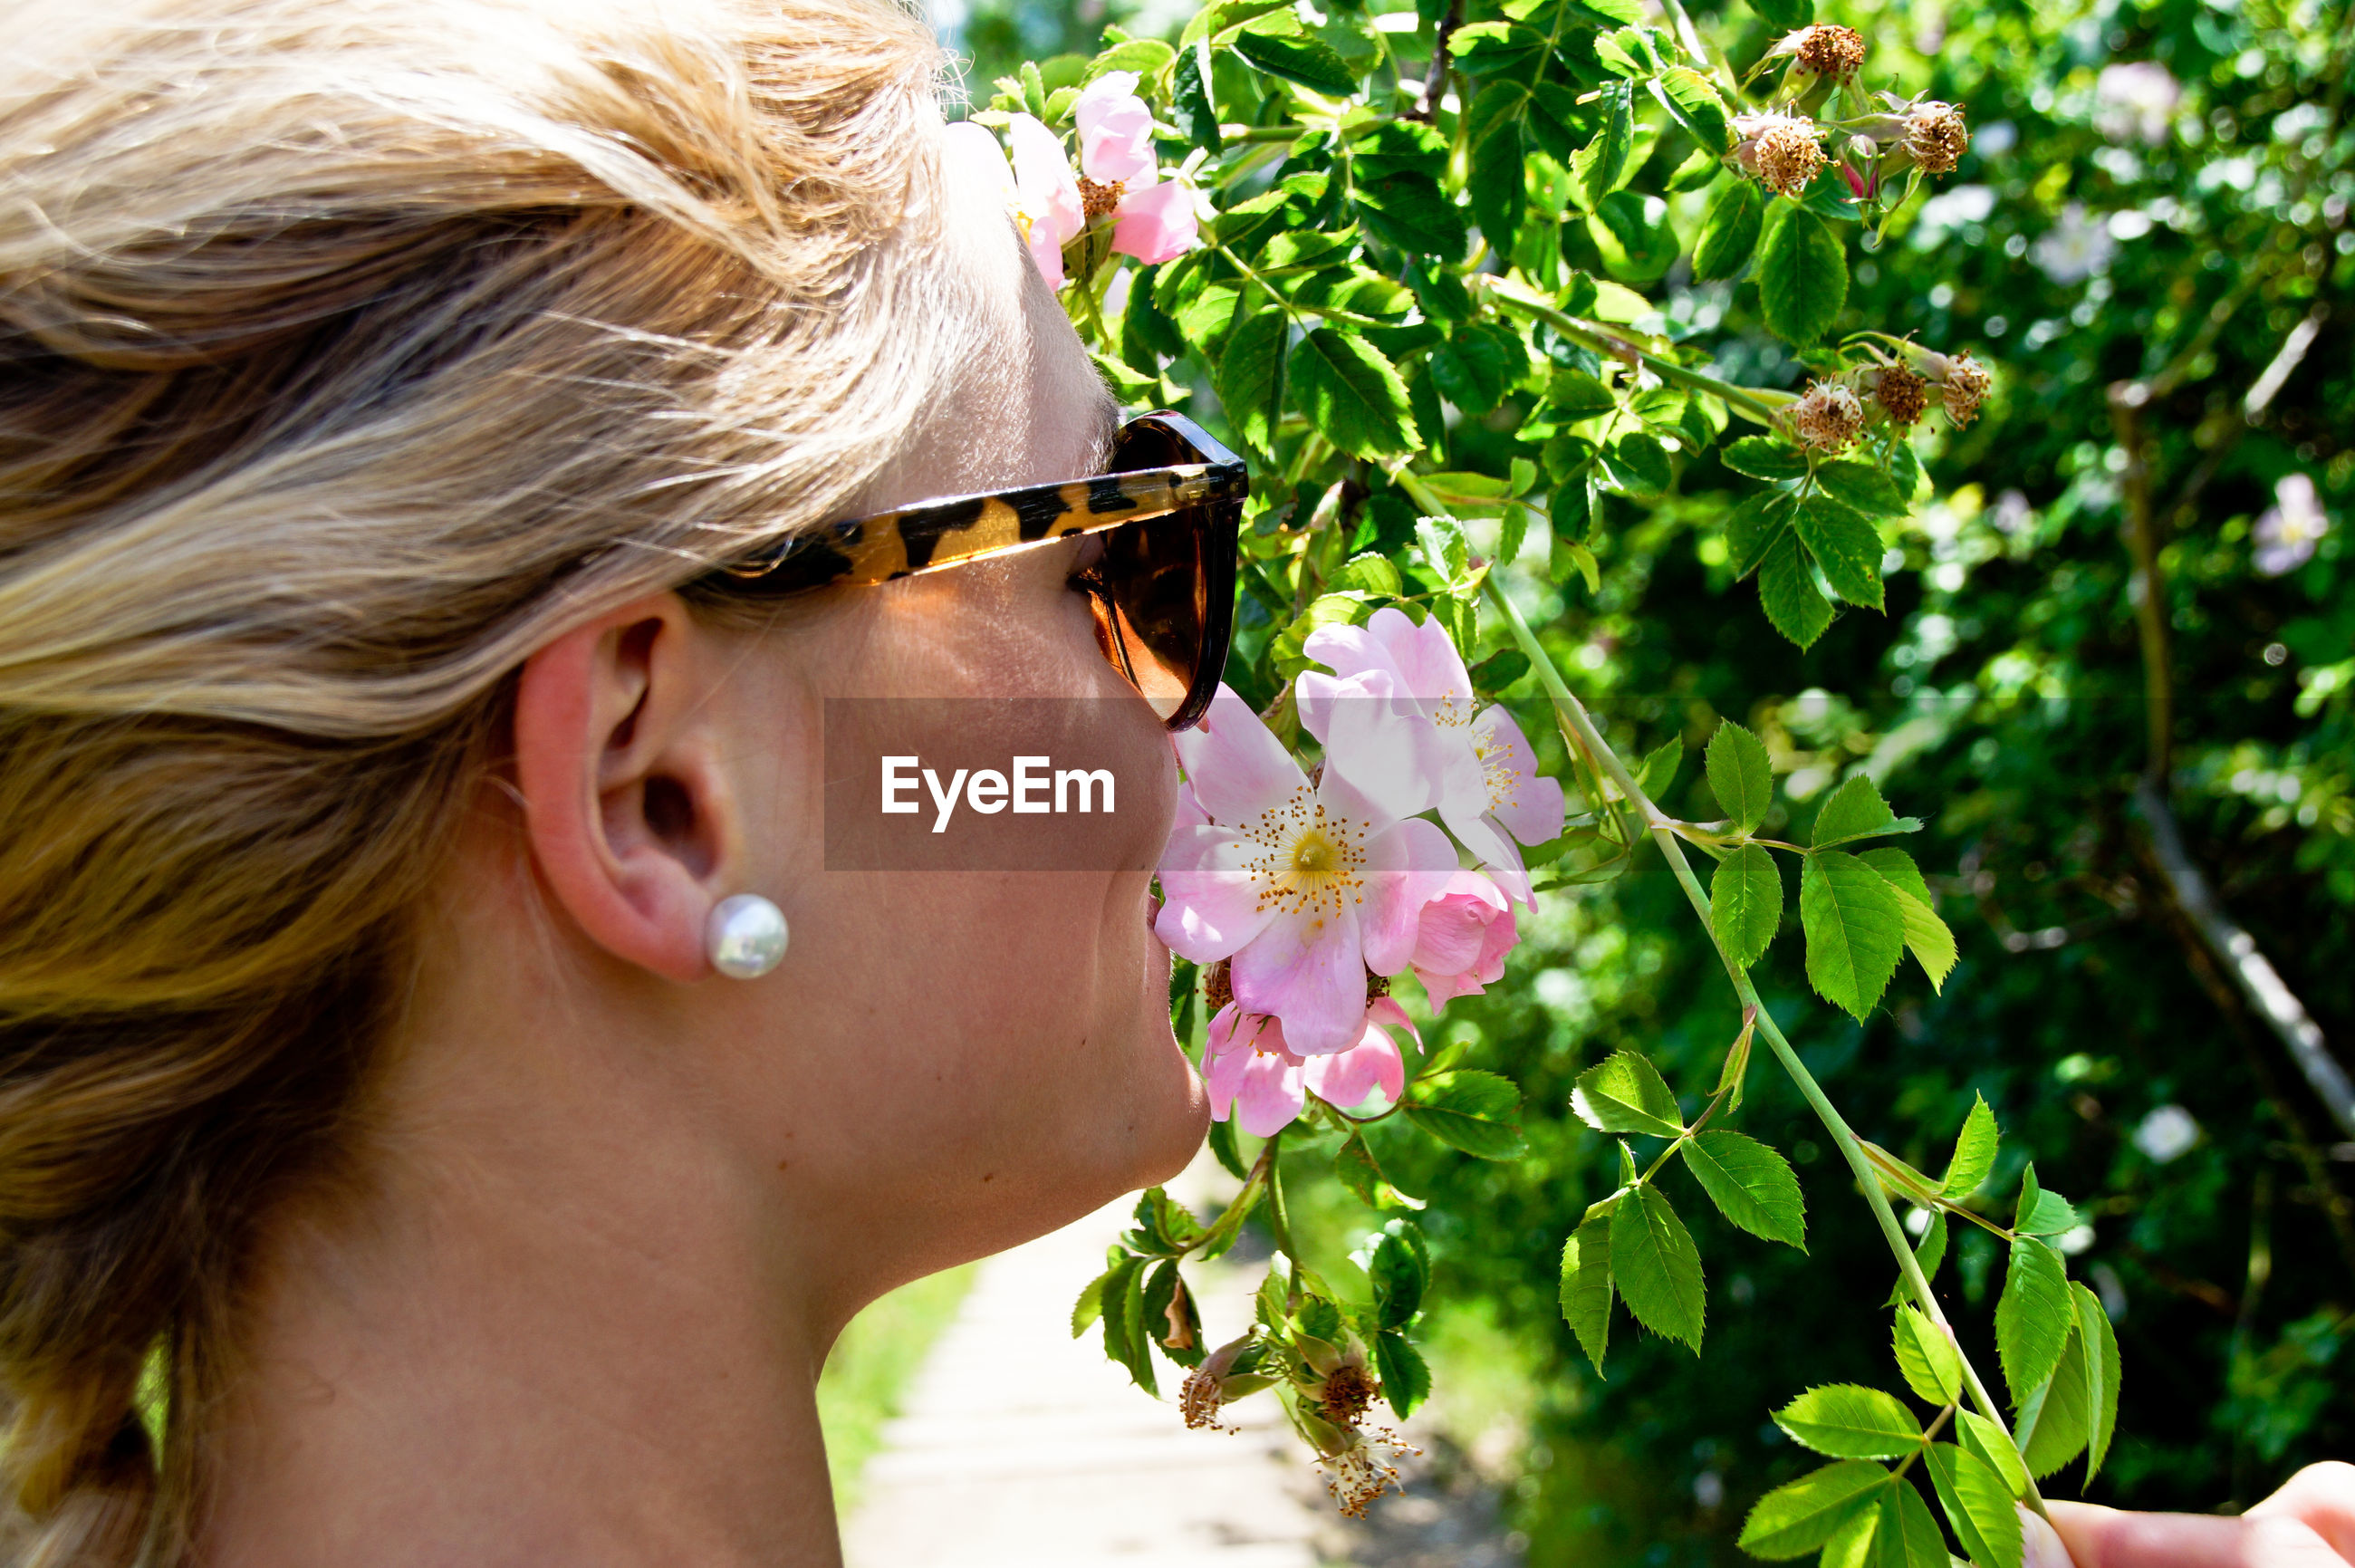 Close-up of woman smelling flowers on plant